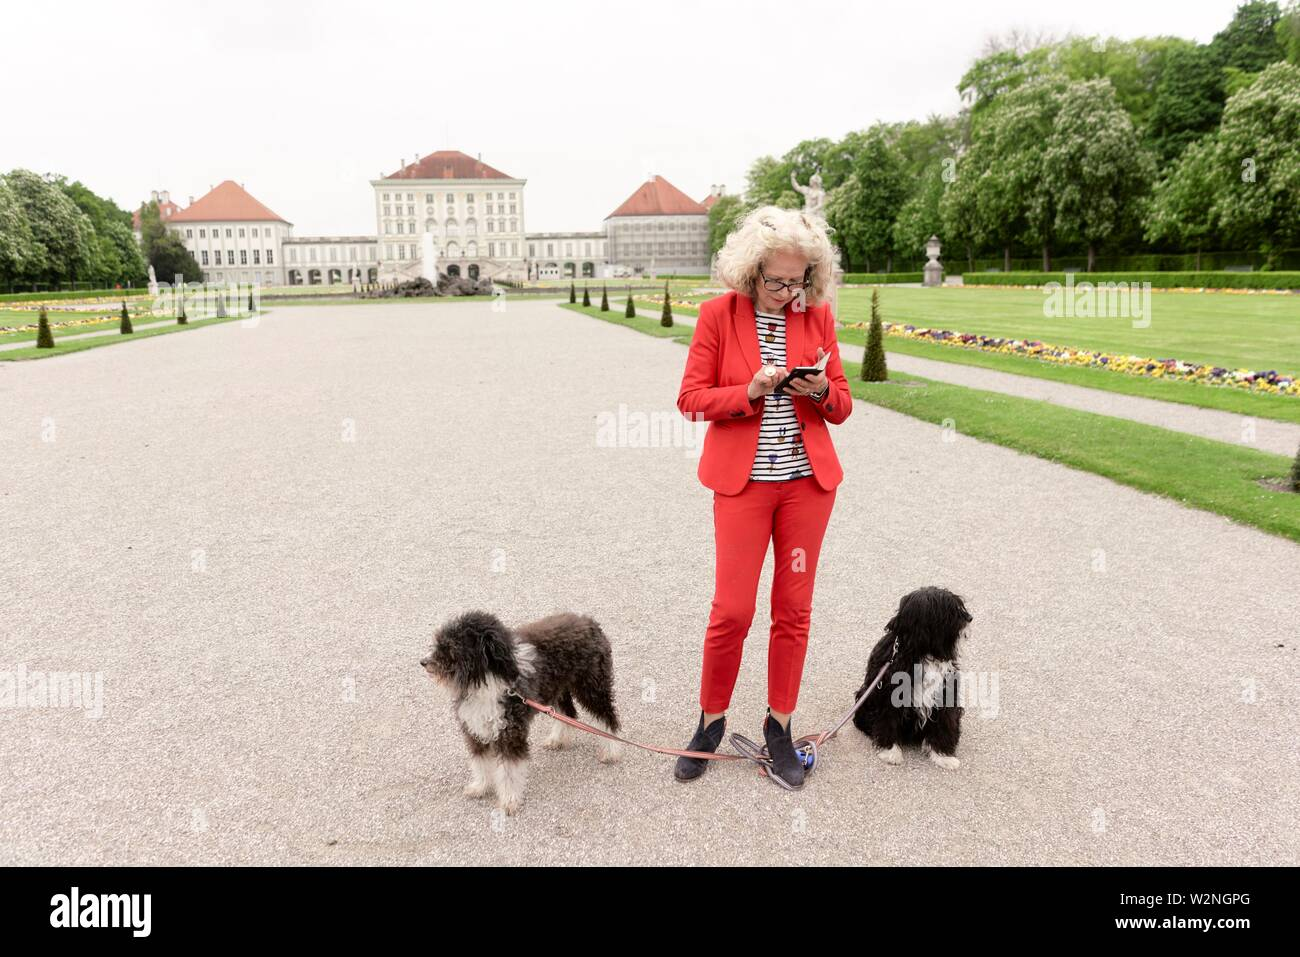 senior woman (67 years old) with two dogs in park, using smartphone at touristic sight Nymphenburg palace, in Munich, Germany. - Stock Image